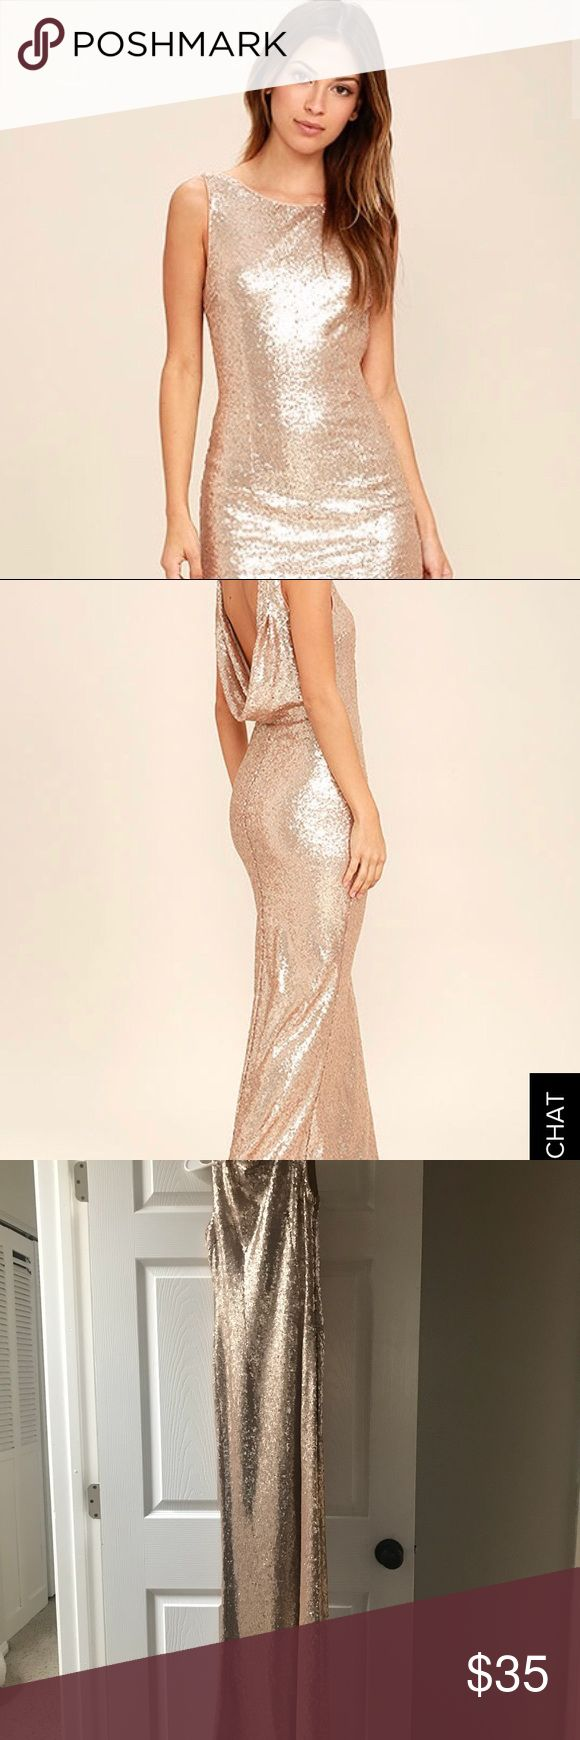 """Lulus gold sequin dress Lulus gold sequin dress """"slink and wink rose gold"""" Wore it for a wedding I was a bridesmaid in. So pretty! I wore a sticky bra and felt so beautiful in it! Low scoop back. There were a couple snags hence the price but really not very noticeable. I am 5'6"""" and wore 2"""" heels it was perfect length. And I'm 130 lbs, bra size 34 B/C Lulu's Dresses Wedding"""